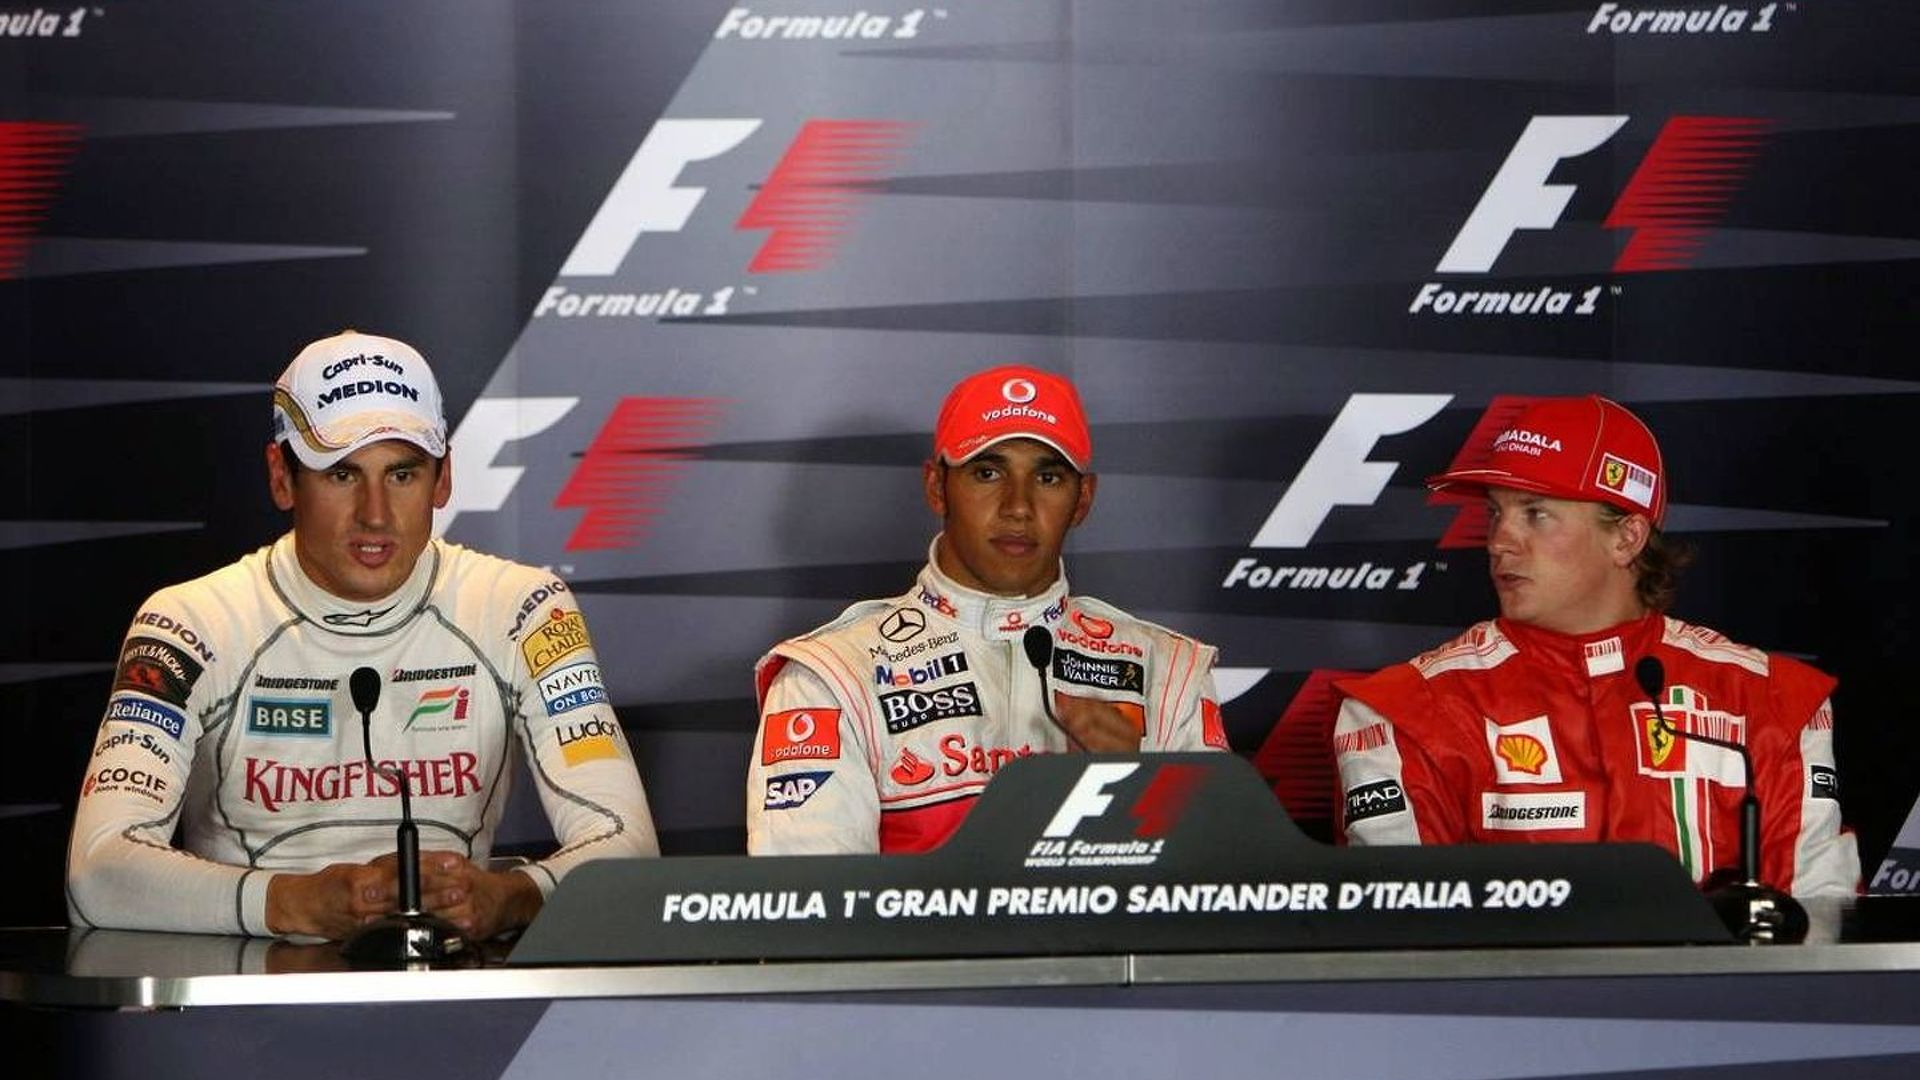 Hamilton on pole for Italian Grand Prix with two-stop strategy